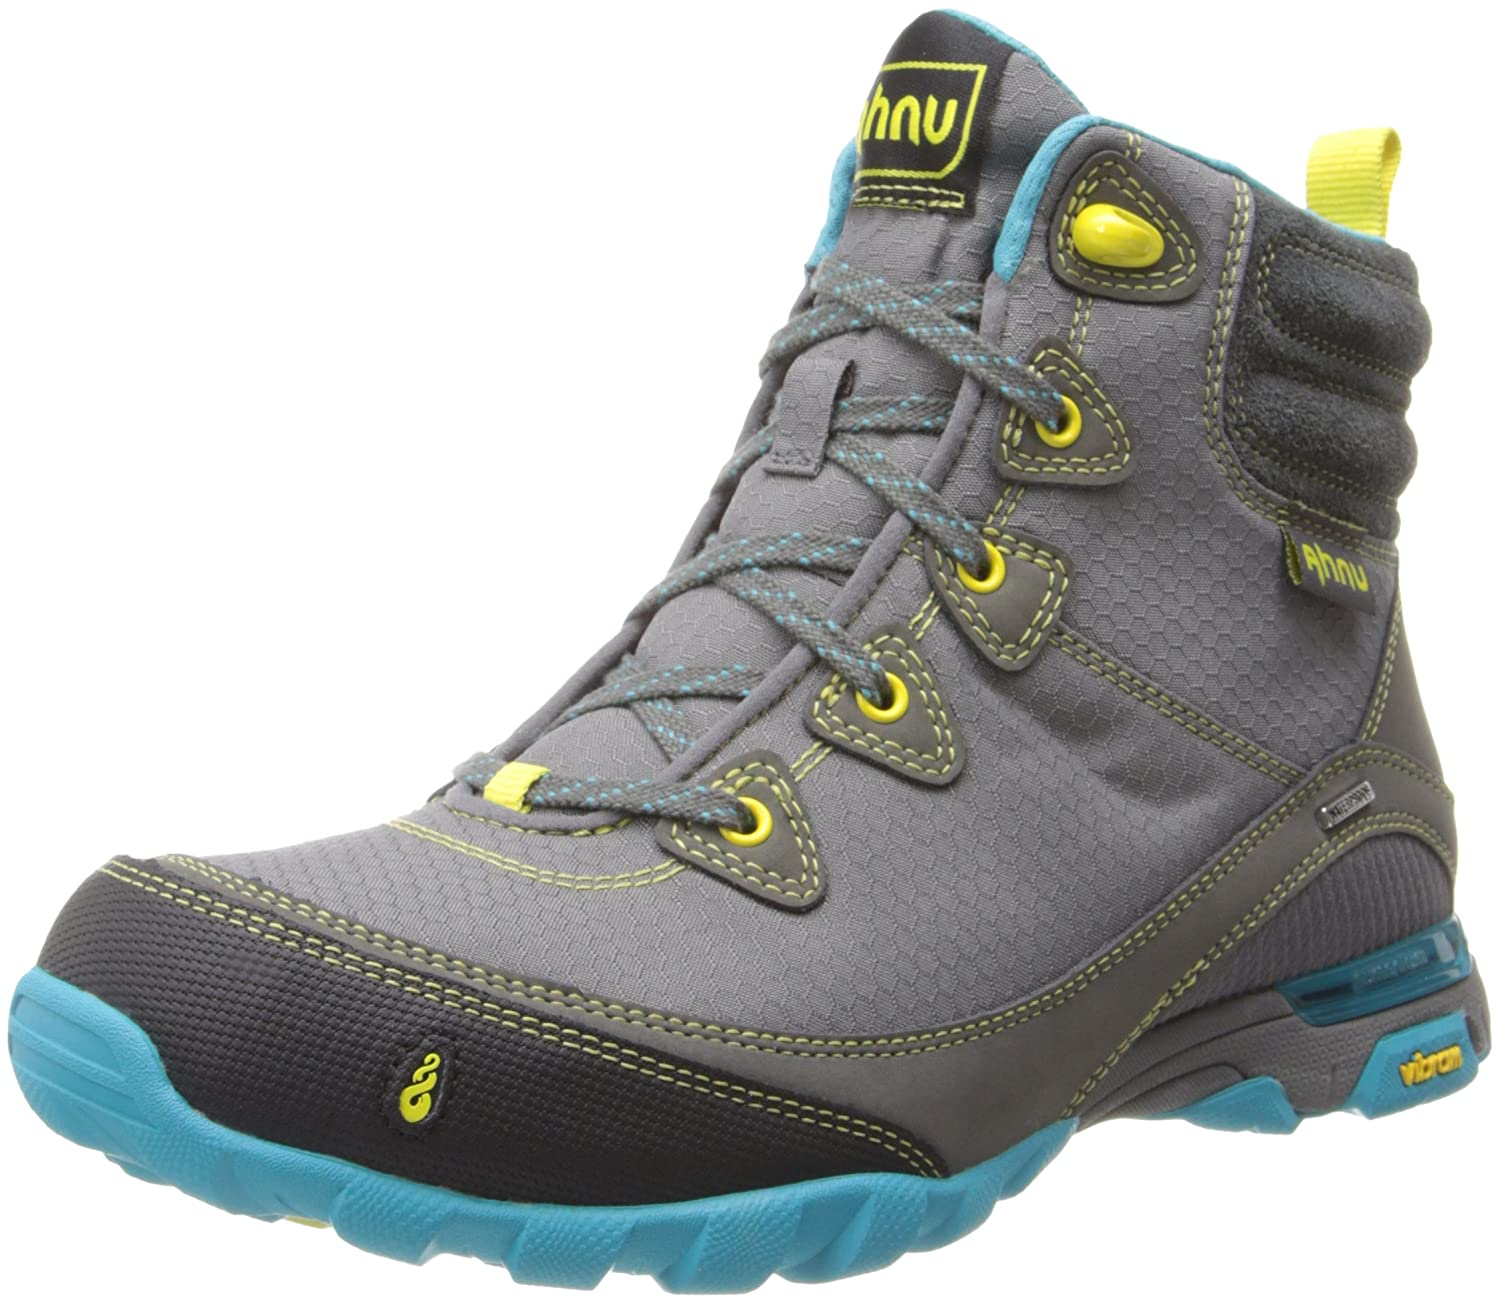 Ahnu Women's Sugarpine B(M) Hiking Boot B00BBLWY1A 7 B(M) Sugarpine US|Dark Grey 2792b2